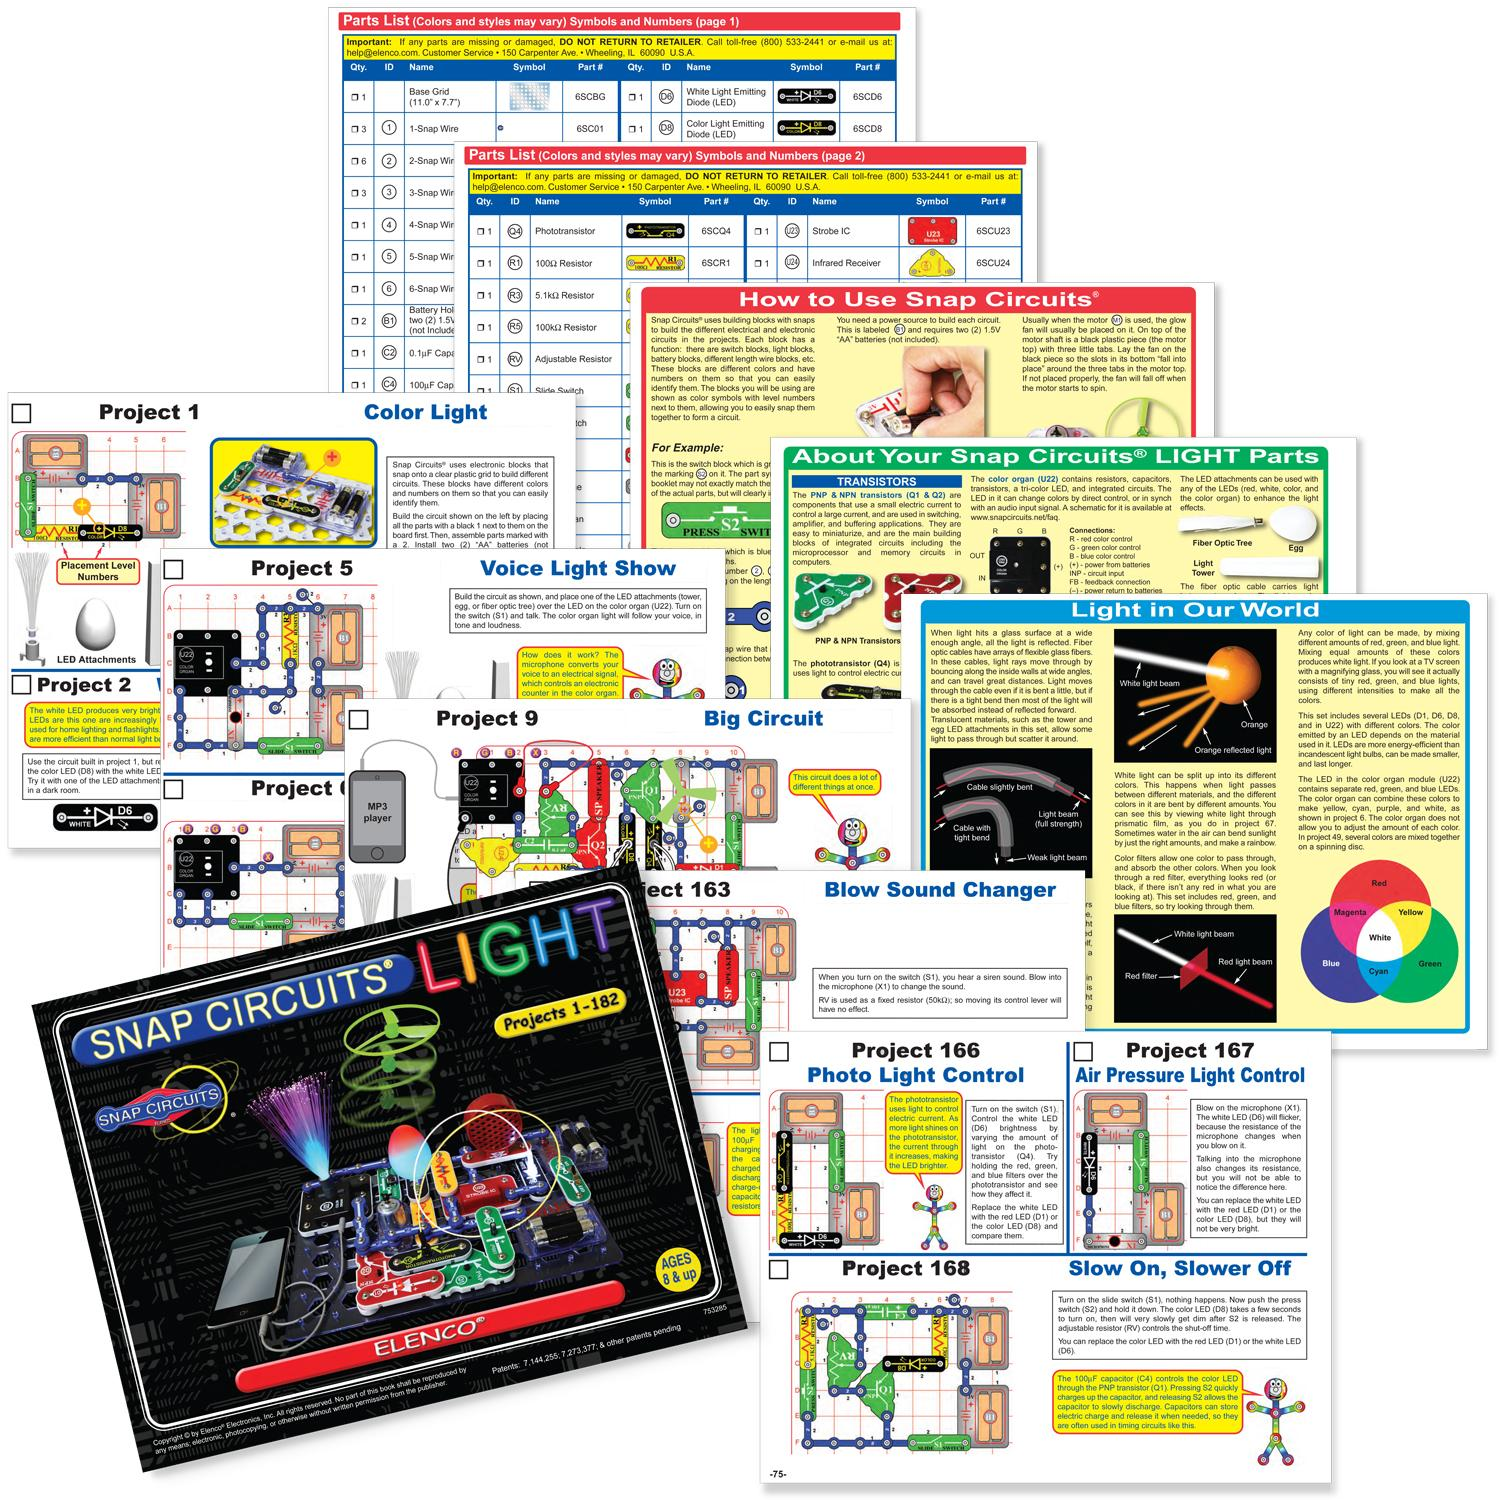 Elenco Snap Circuits Lights Scl 175 Electronics Kits Amazon Canada Extreme Sc 750 Review View Larger